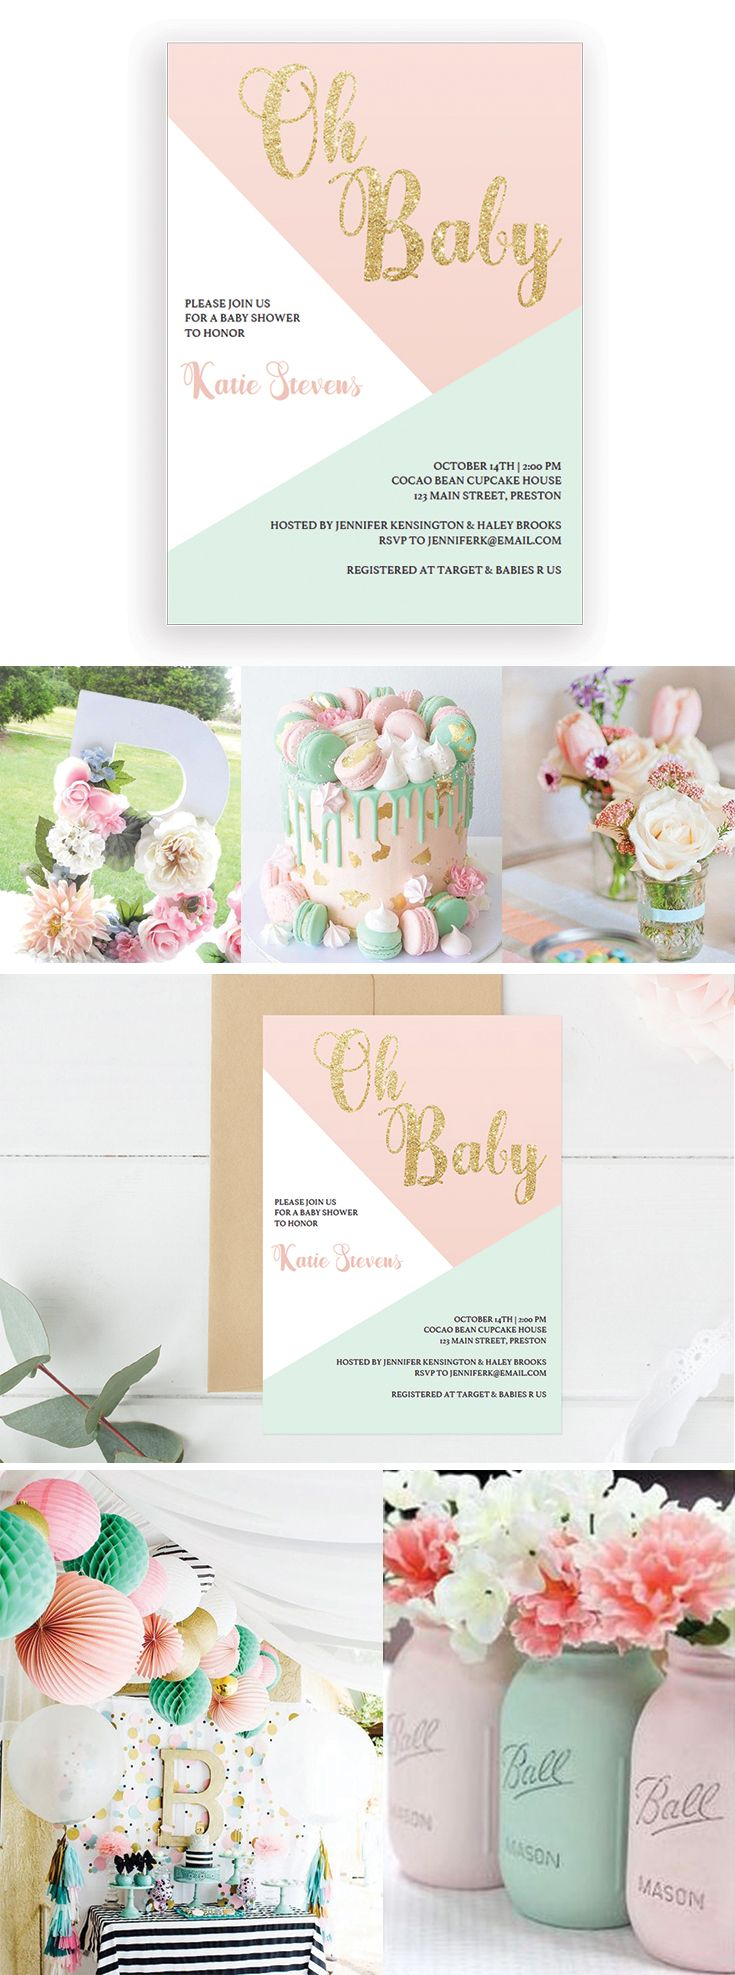 free printable camo baby shower invitations templates%0A Geometric Pastels  Baby Shower Invitation Template